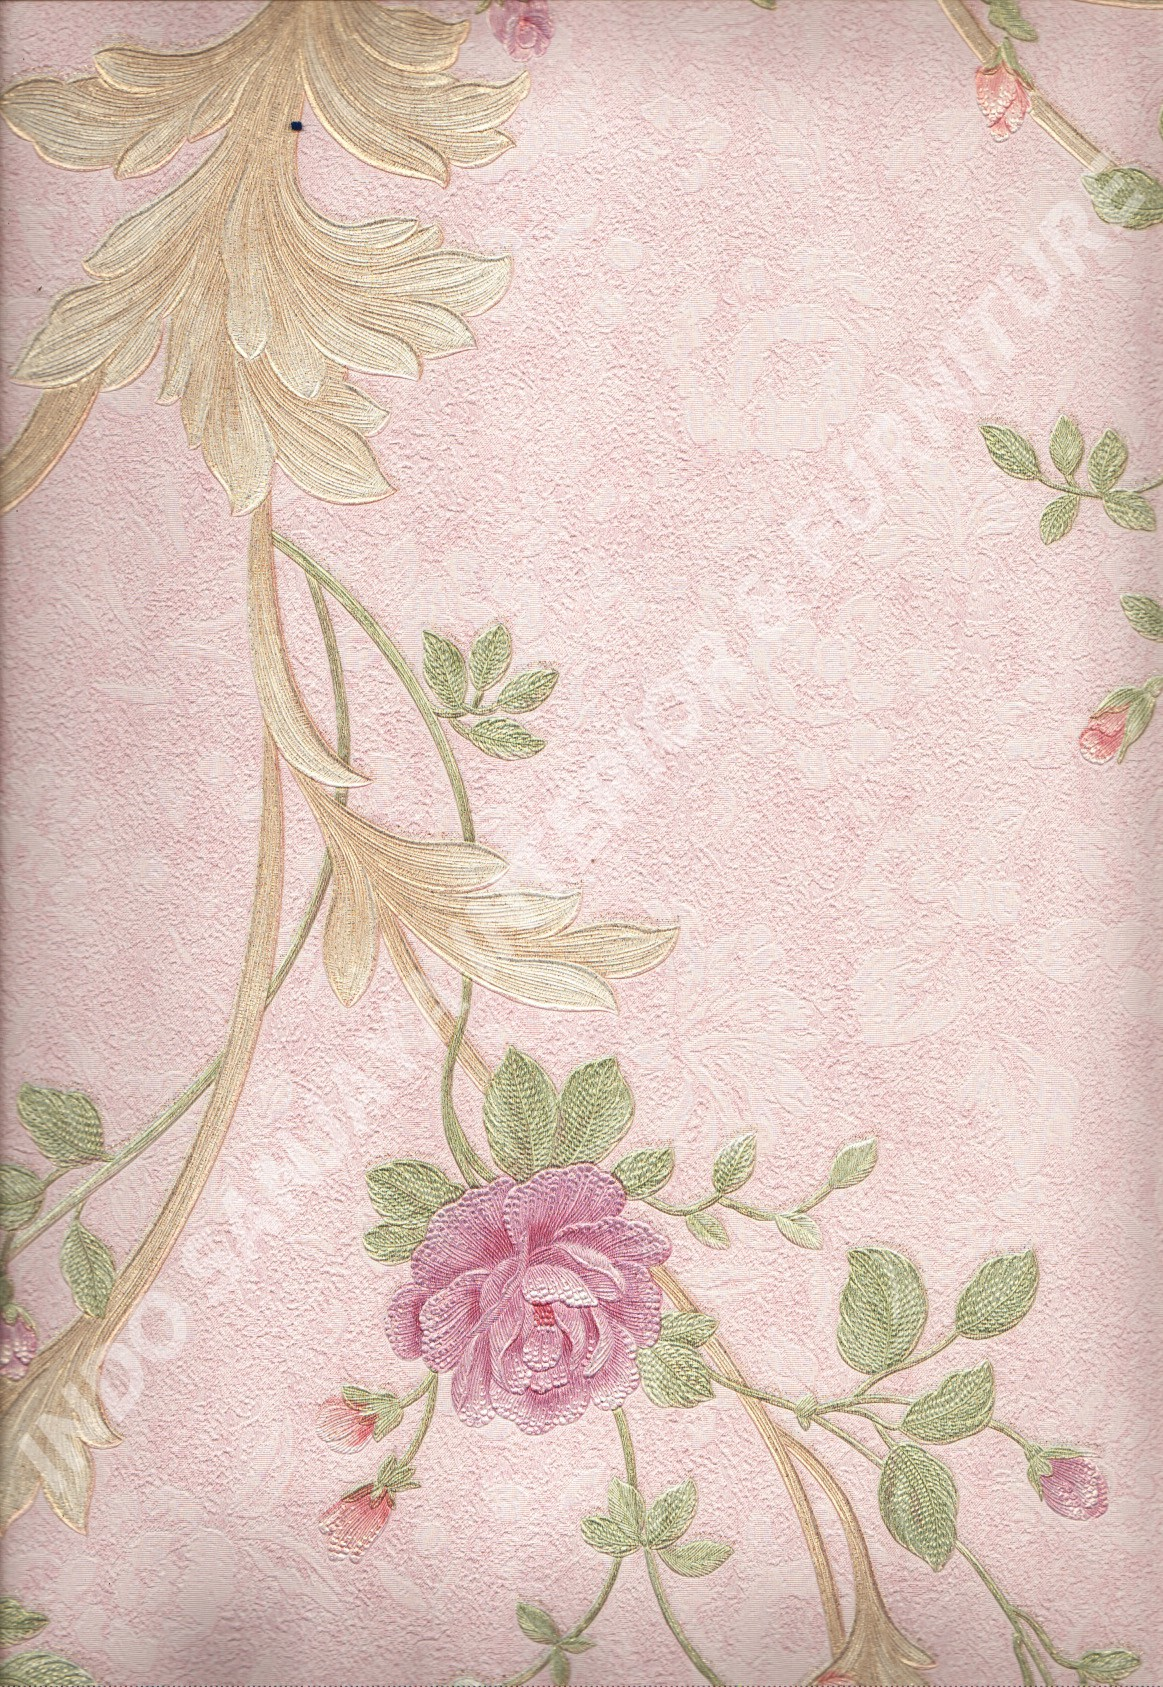 wallpaper   Wallpaper Bunga 51009-3:51009-3 corak  warna